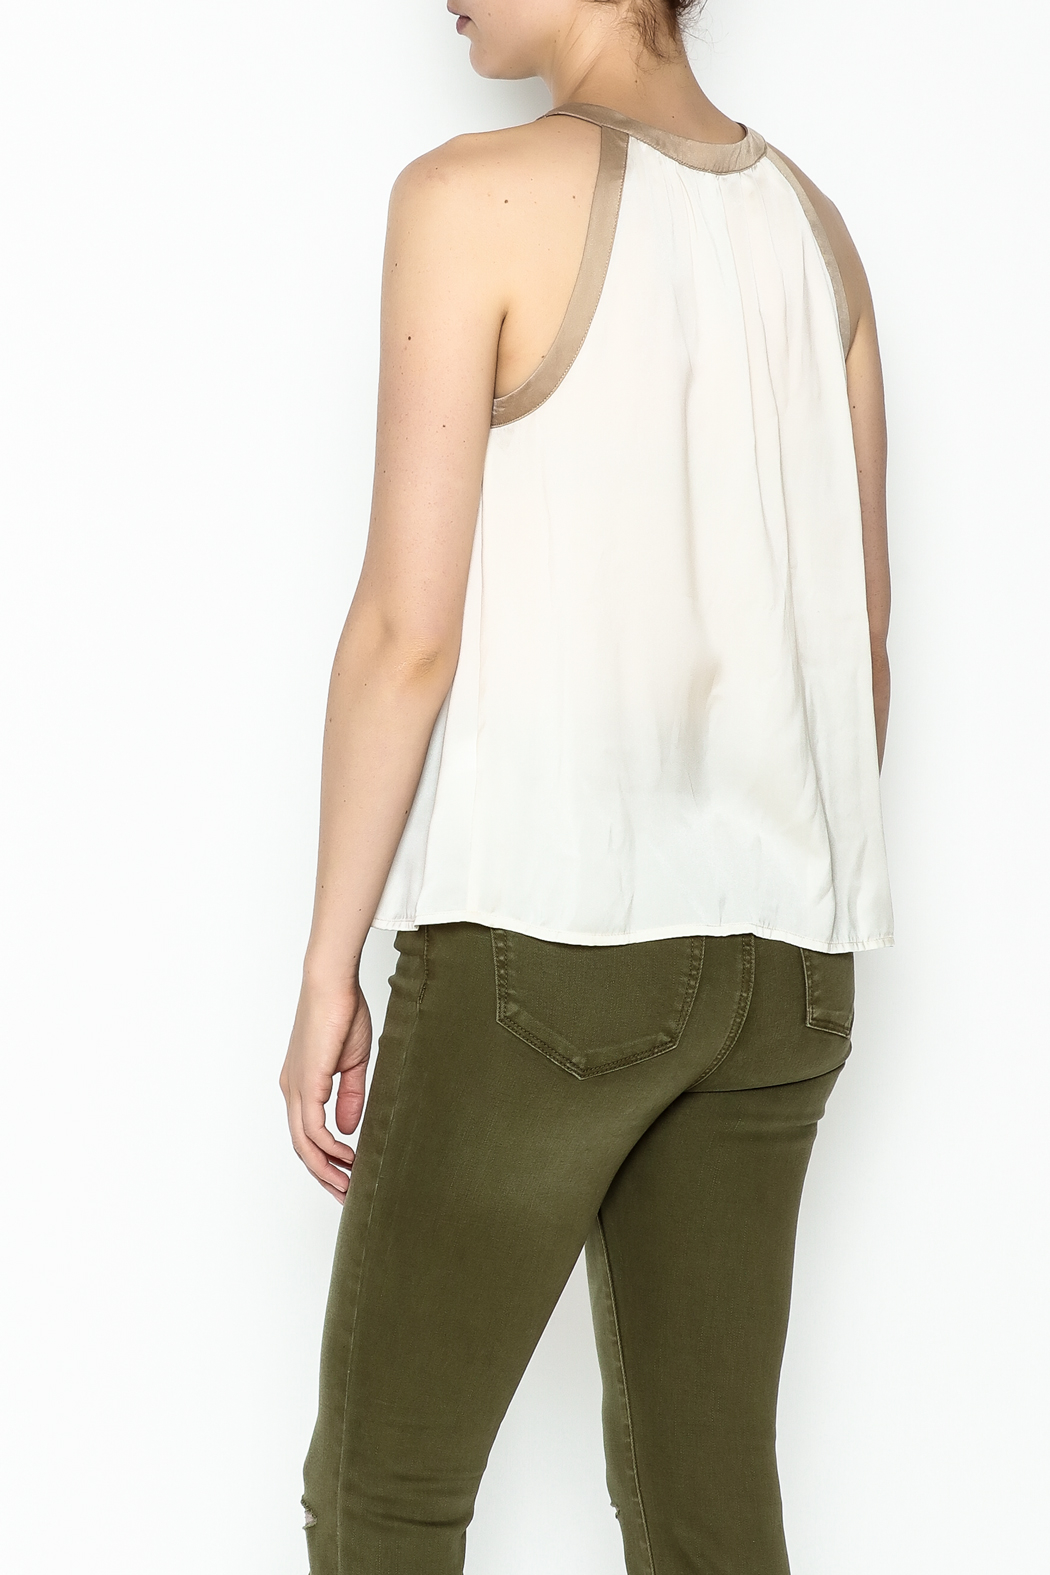 Kensie Matteford Chiffon Top - Back Cropped Image